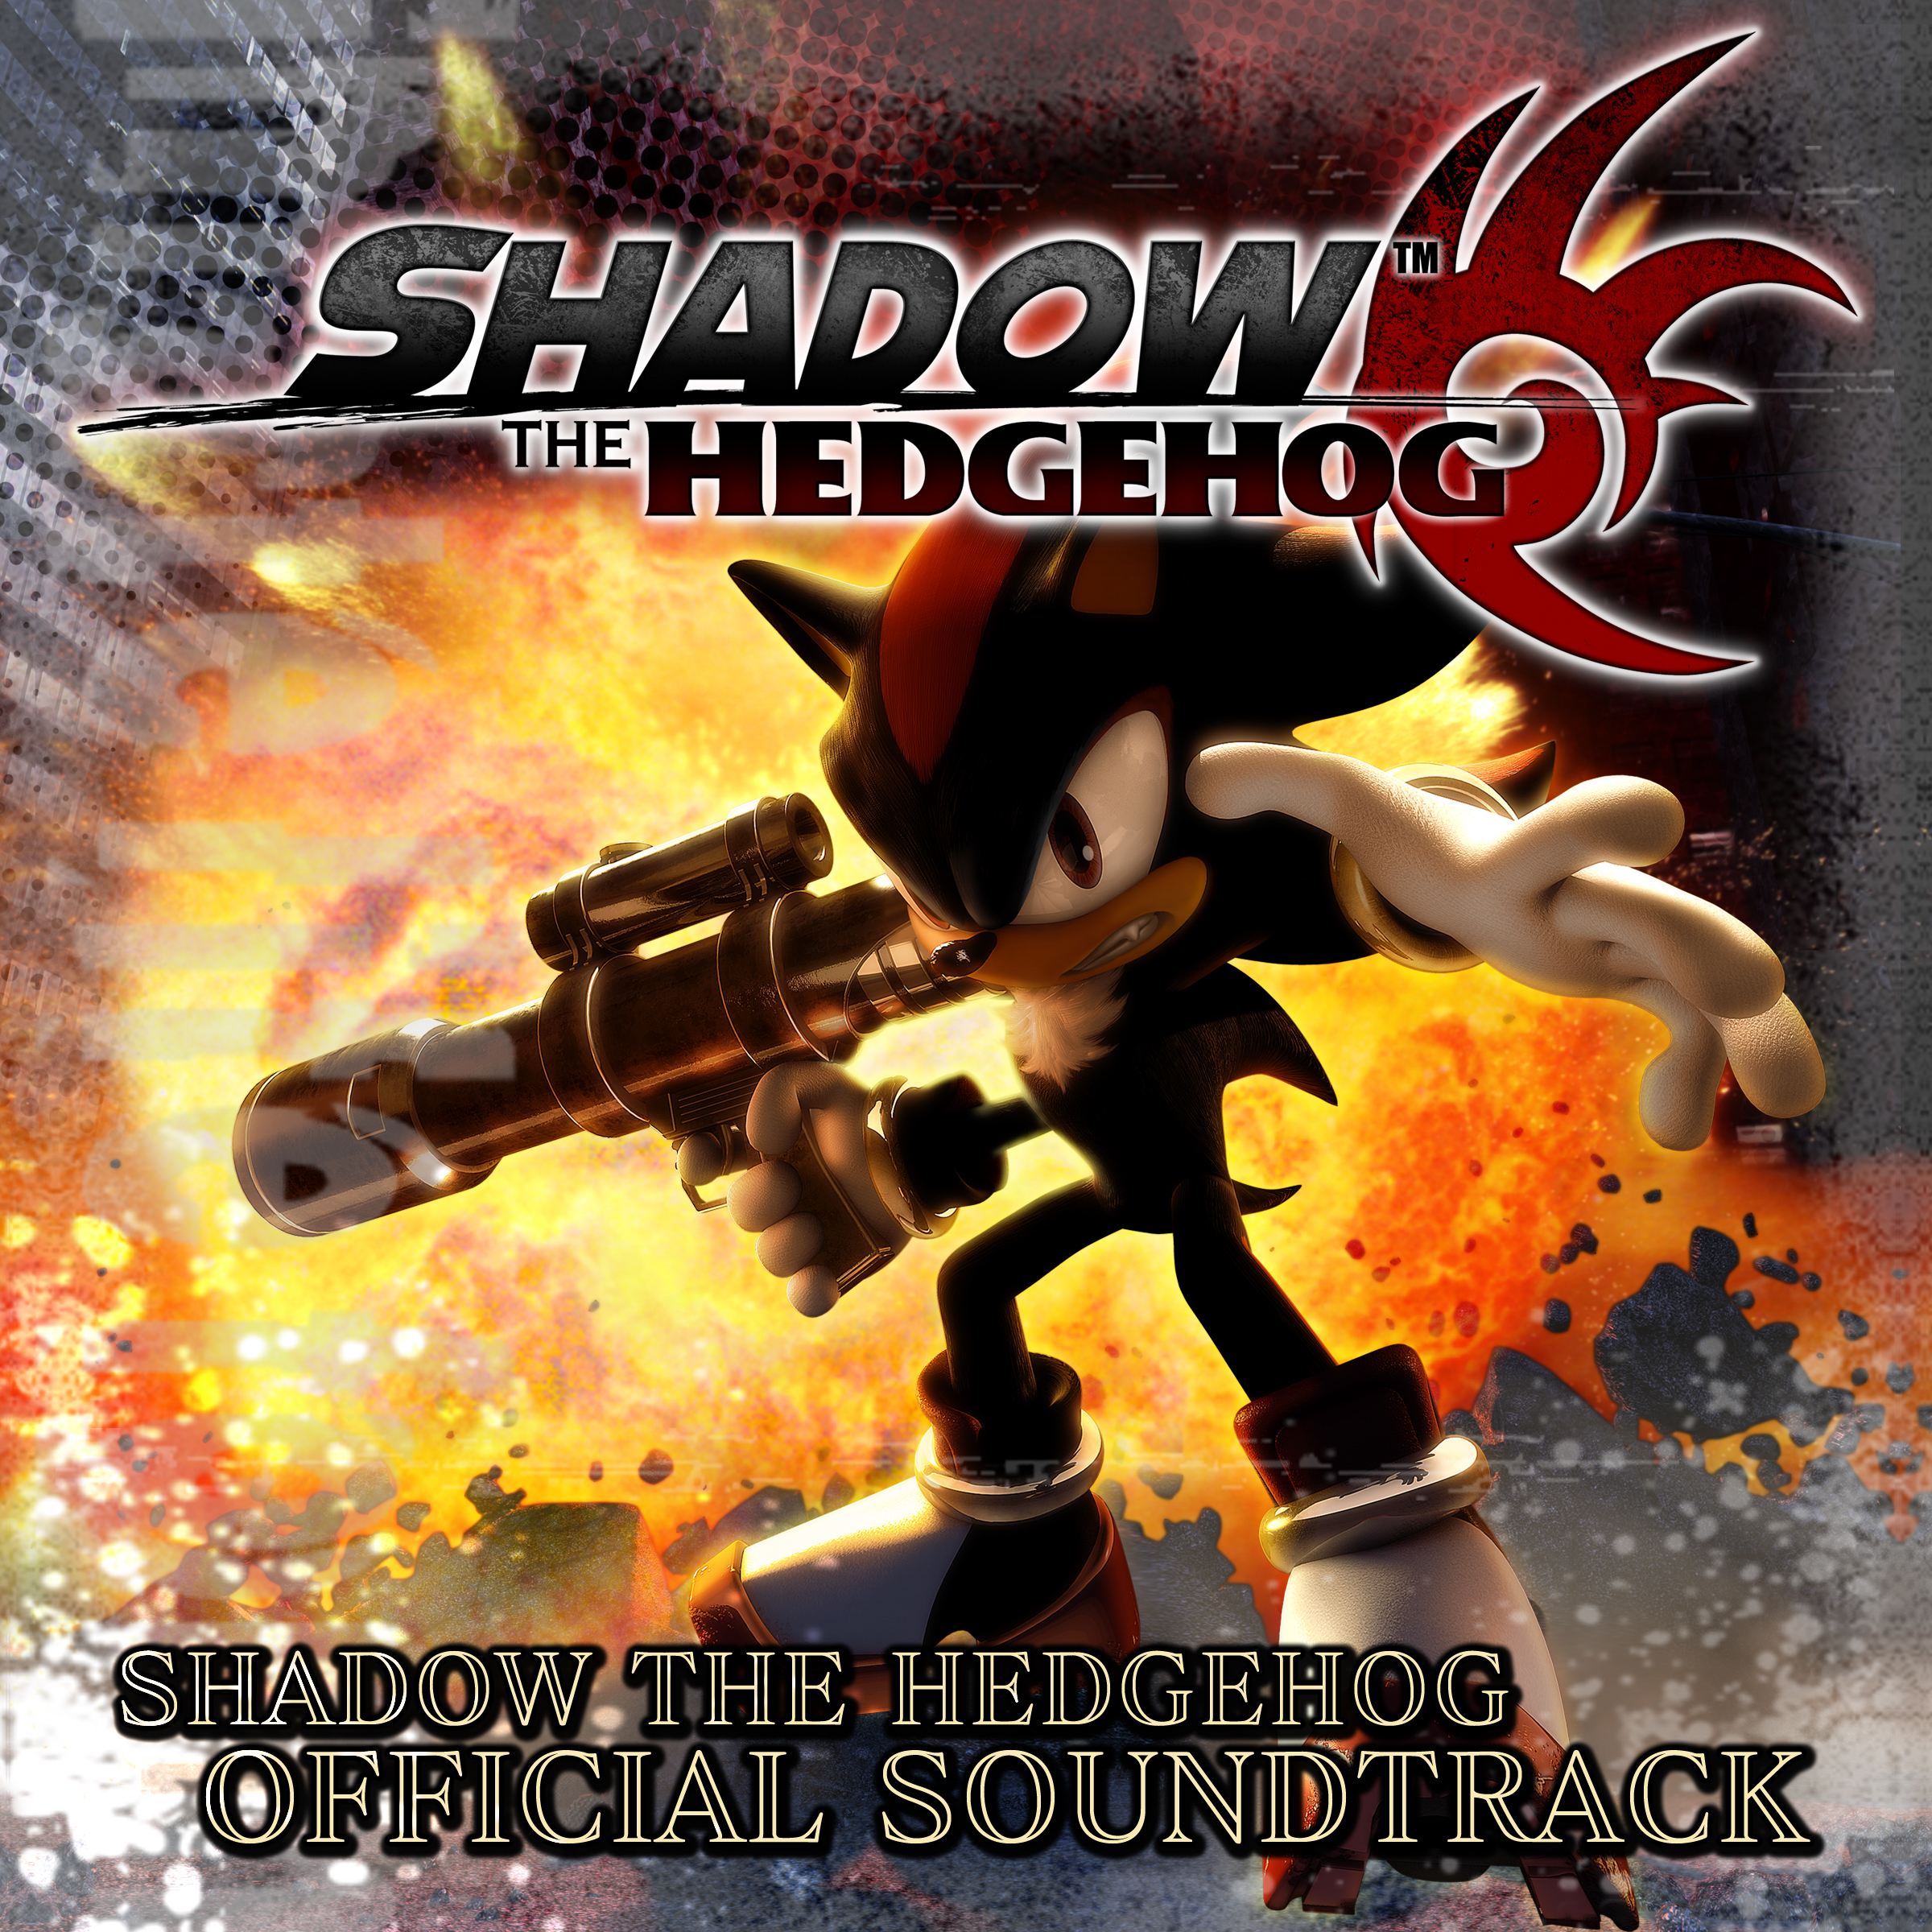 File:ShadowOfficialSoundtrack.jpg